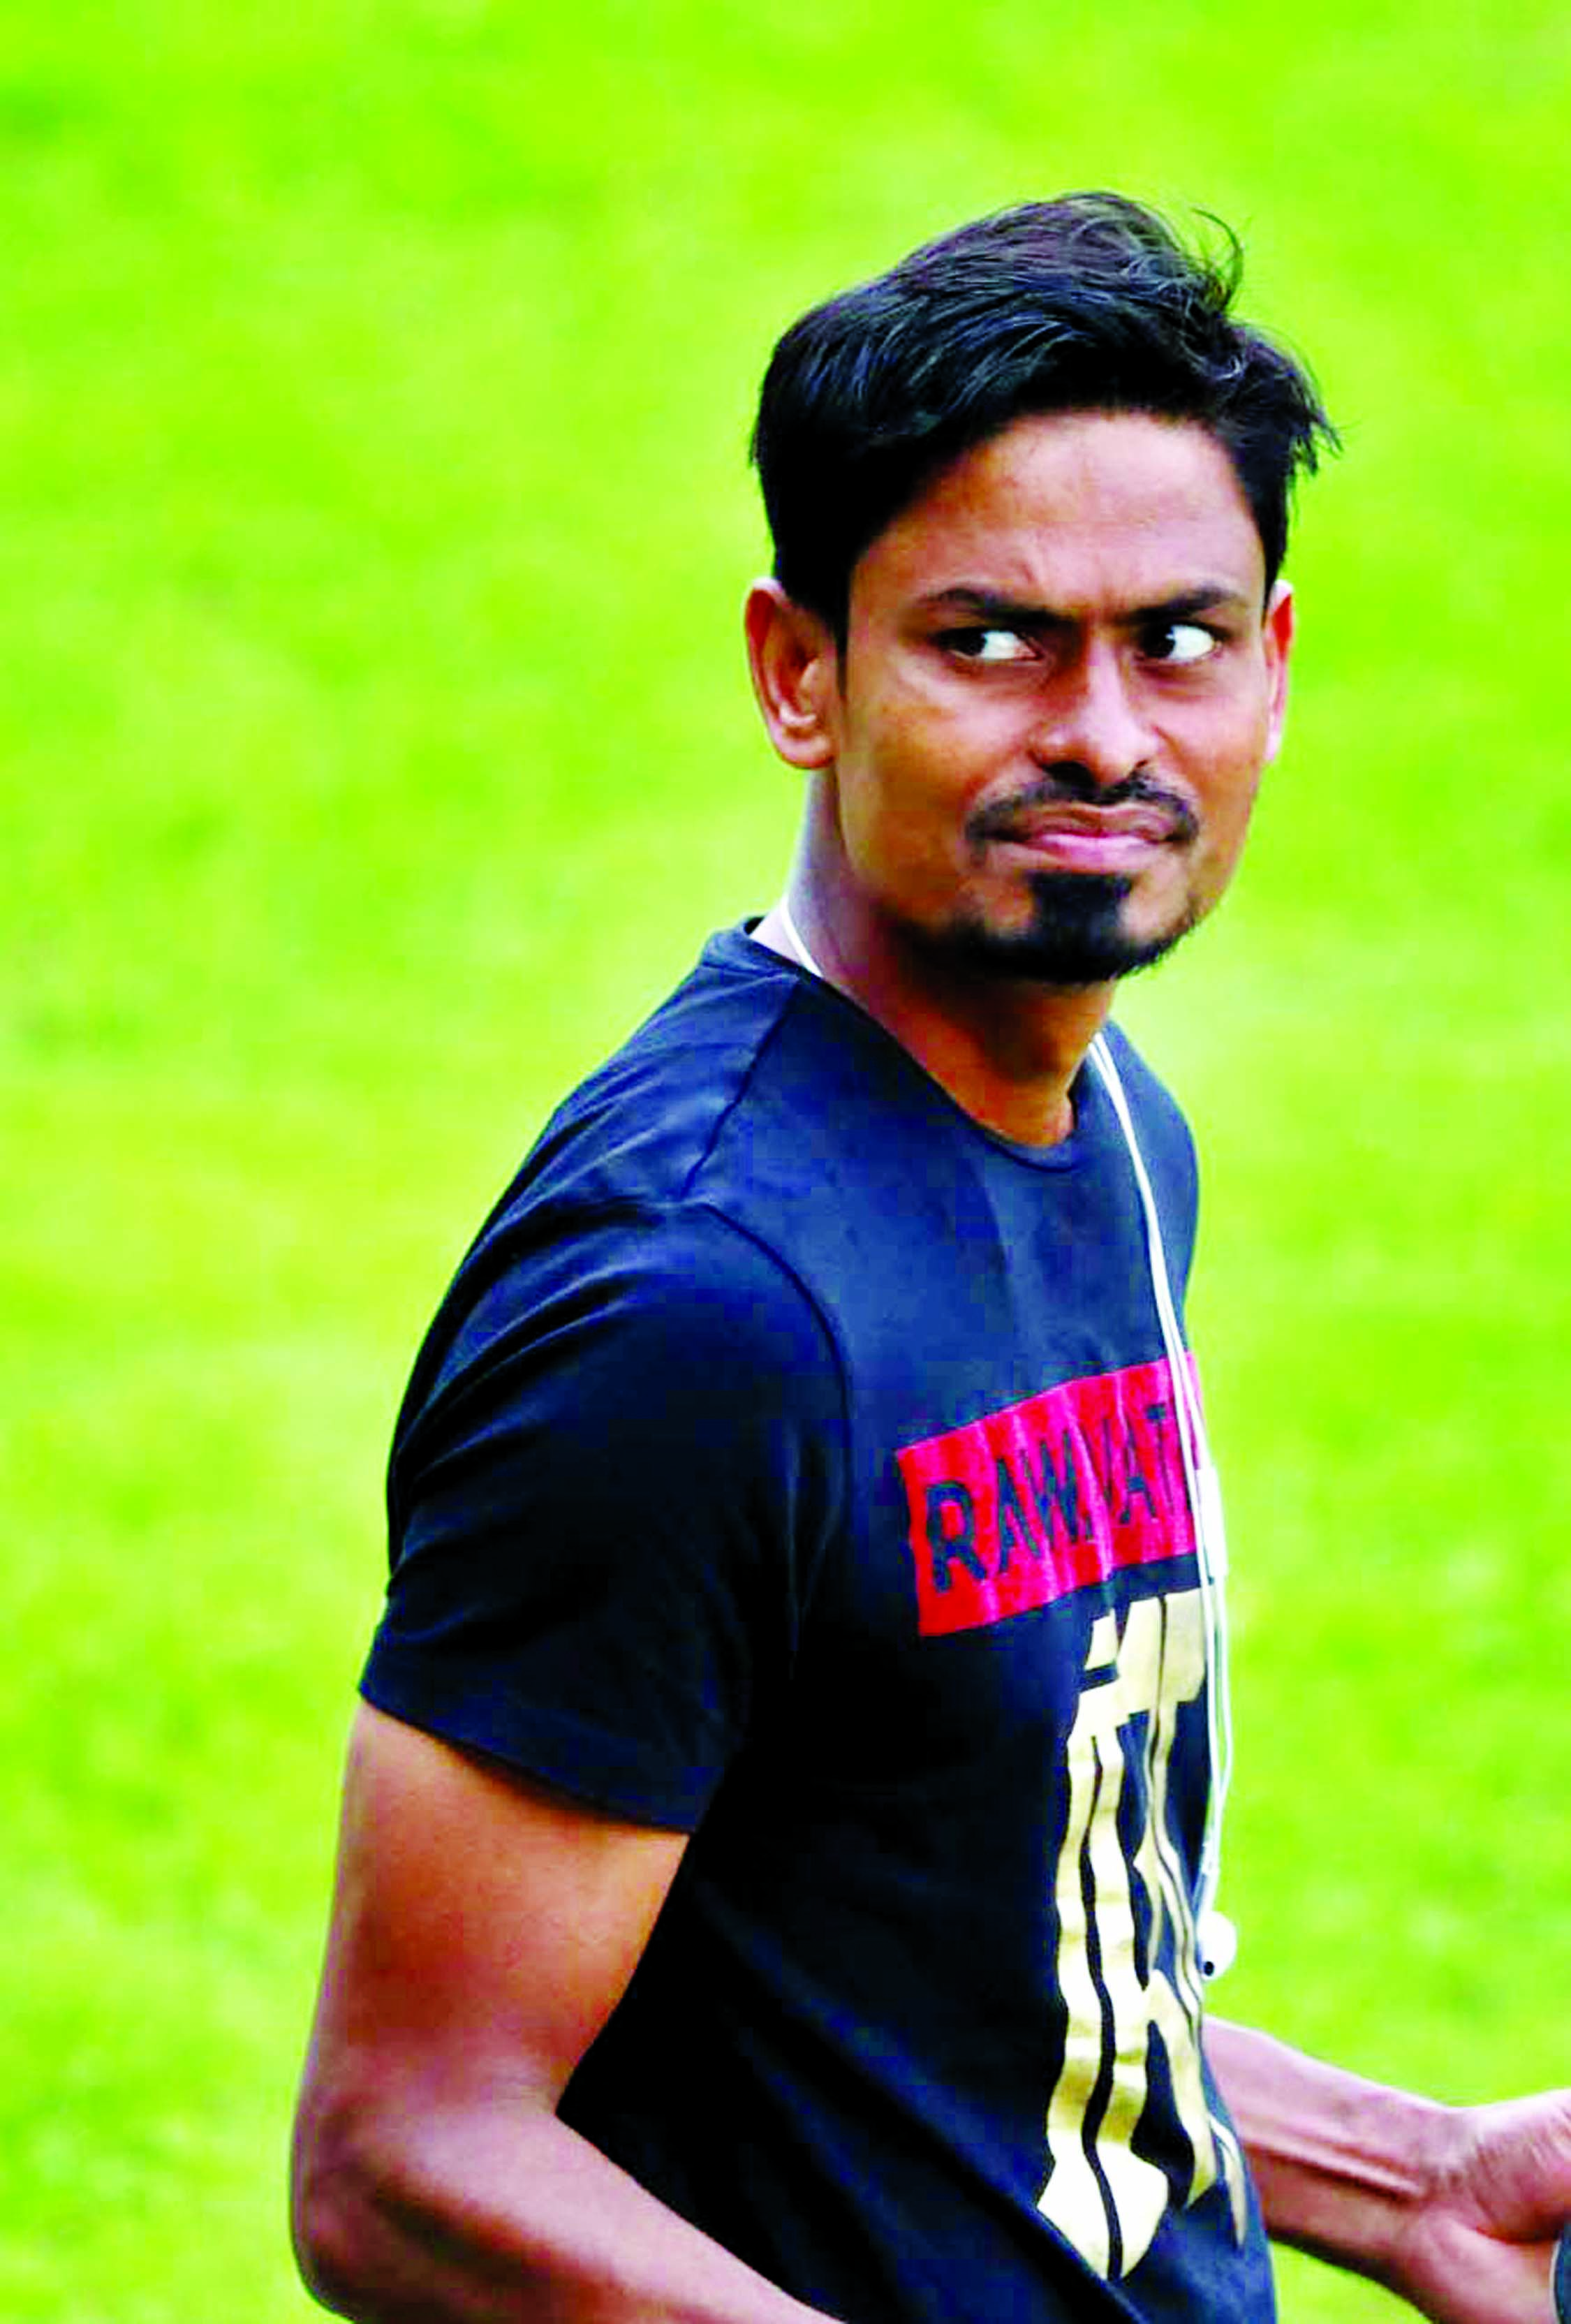 Taijul optimistic to get chance regularly in BD Cricket team for all three formats with changed bowling action